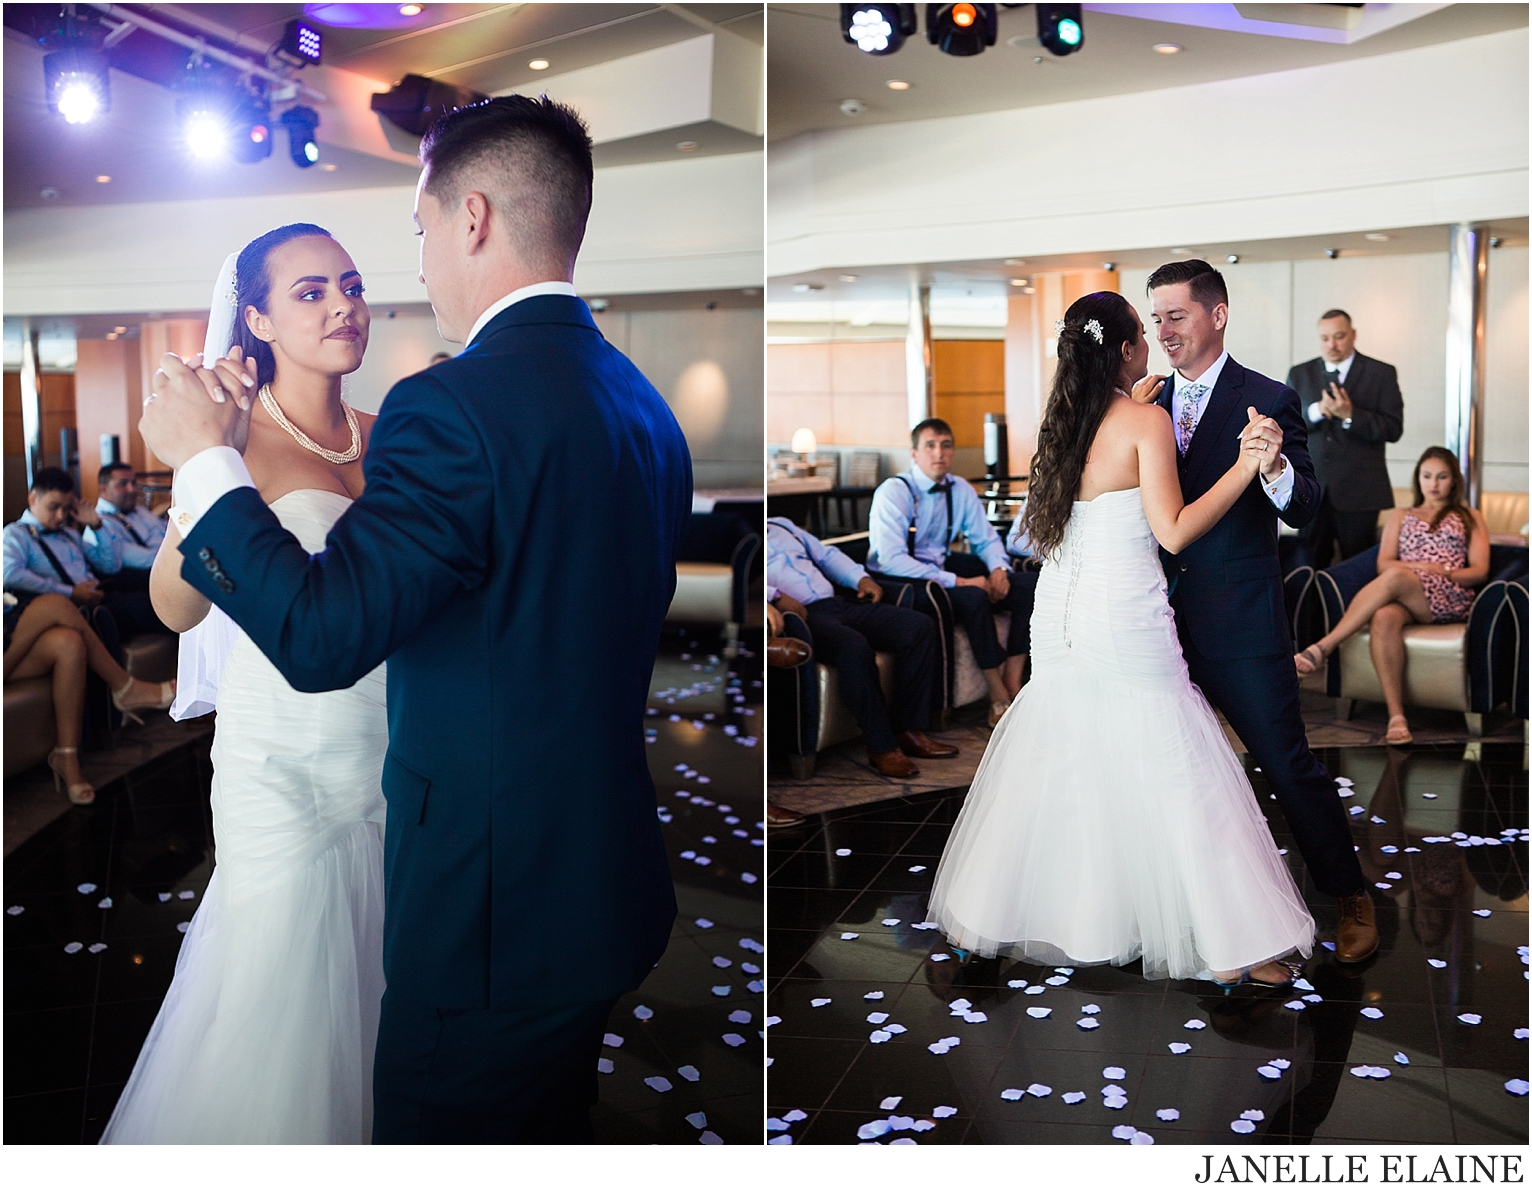 white wedding-royal caribbean-janelle elaine photography-424.jpg